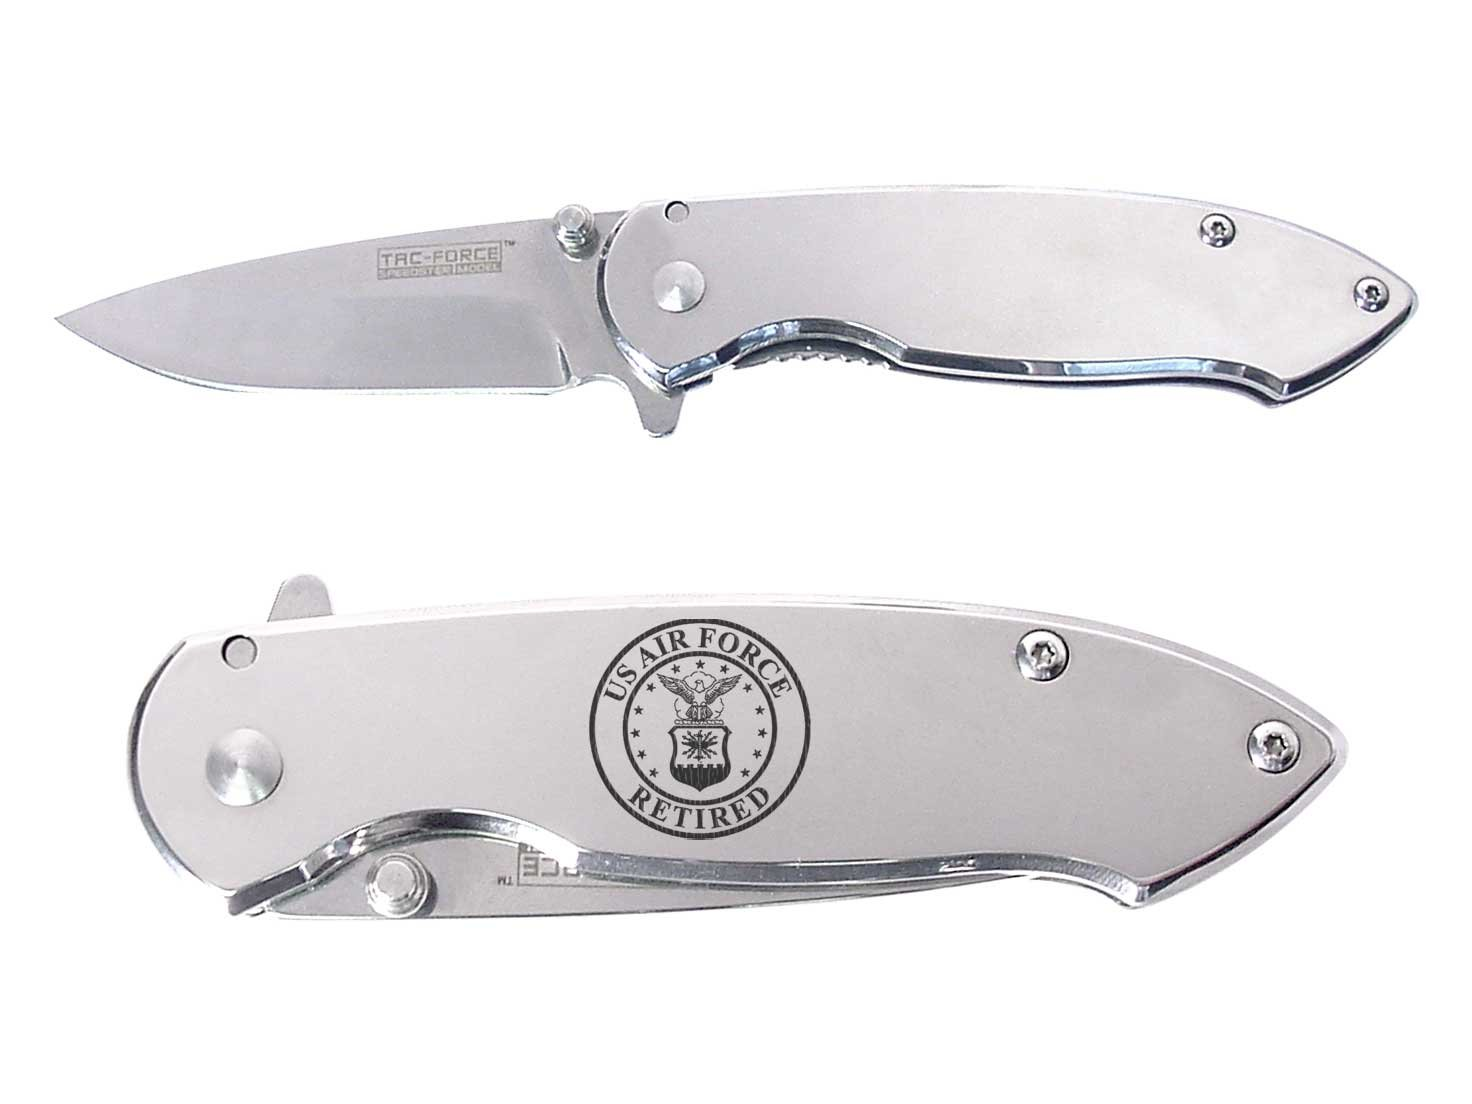 USAF Air Force Round Retired engraved Mirror Finish TAC-Force TF-862C Speedster Executive Model Folding Pocket Knife by NDZ Performance велосипедная шина oem mtb bicicleta 0 73 26 1 5 1 75 v h10682 a